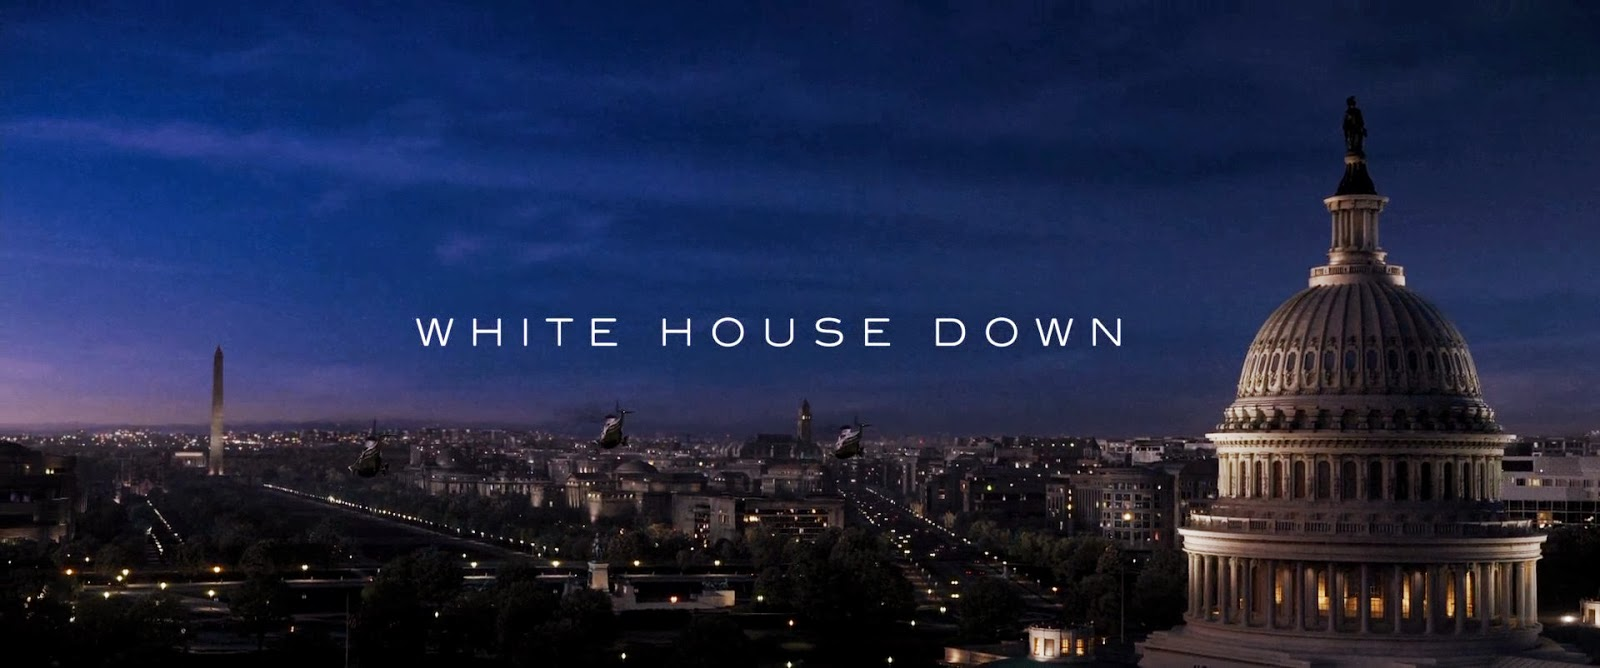 White House Down (2013) S2 s White House Down (2013)